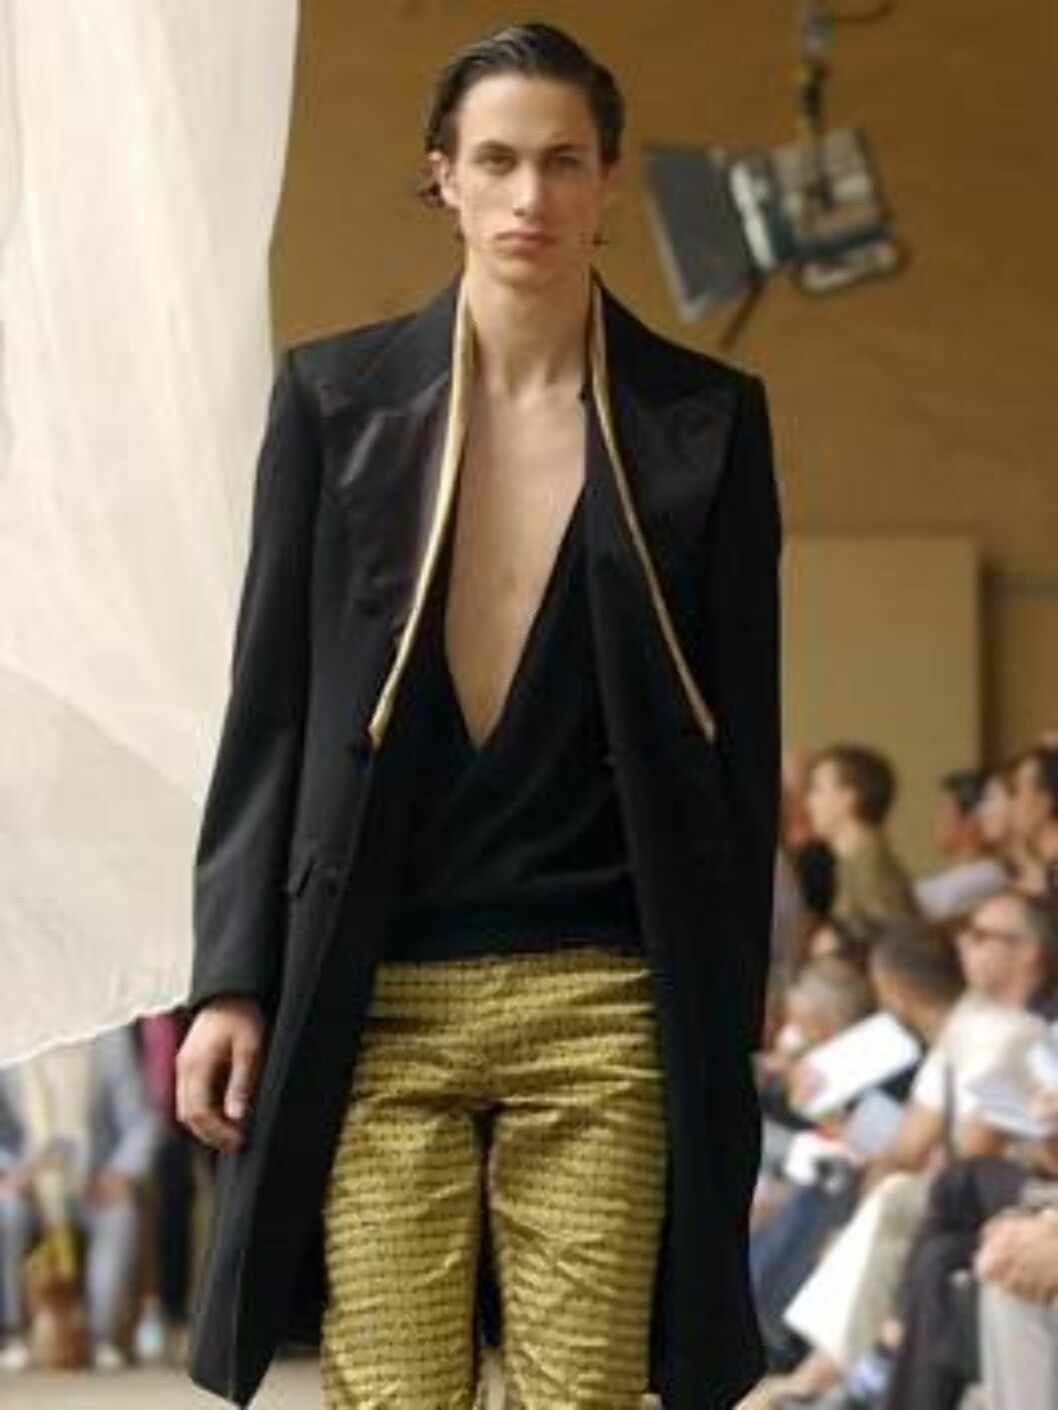 A model wears an outfit part of Alexander McQueen Spring-Summer 2007 men's collection, unveiled in Milan, Italy, Monday, June 26, 2006. (AP Photo/Alberto Pellaschiar) Foto: AP/Scanpix